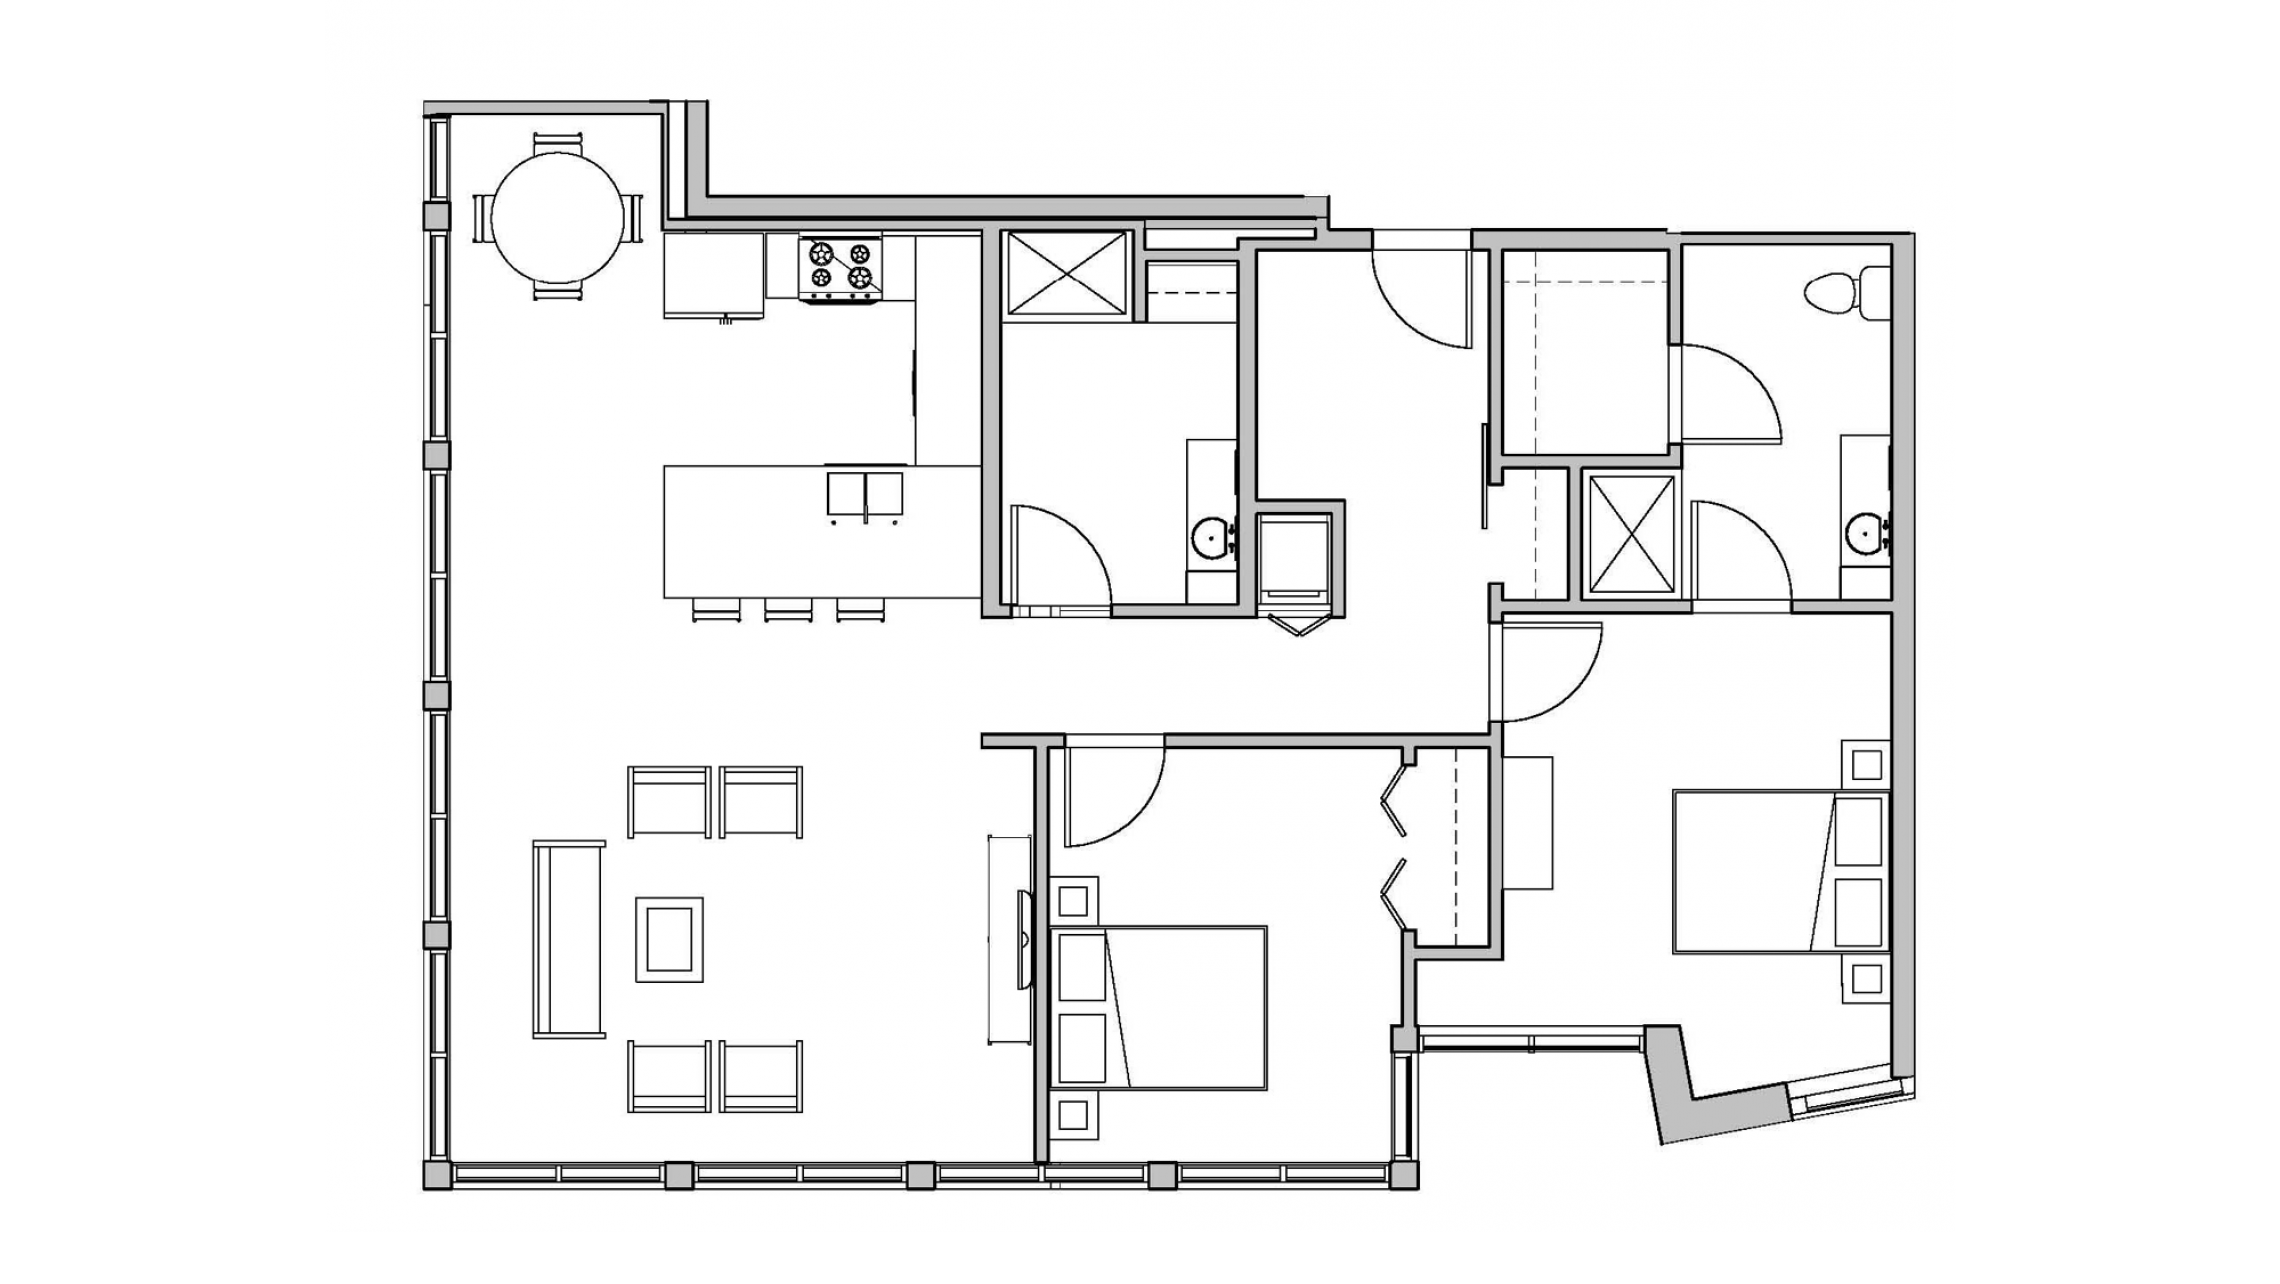 ULI Seven27 101 - Two Bedroom, Two Bathroom